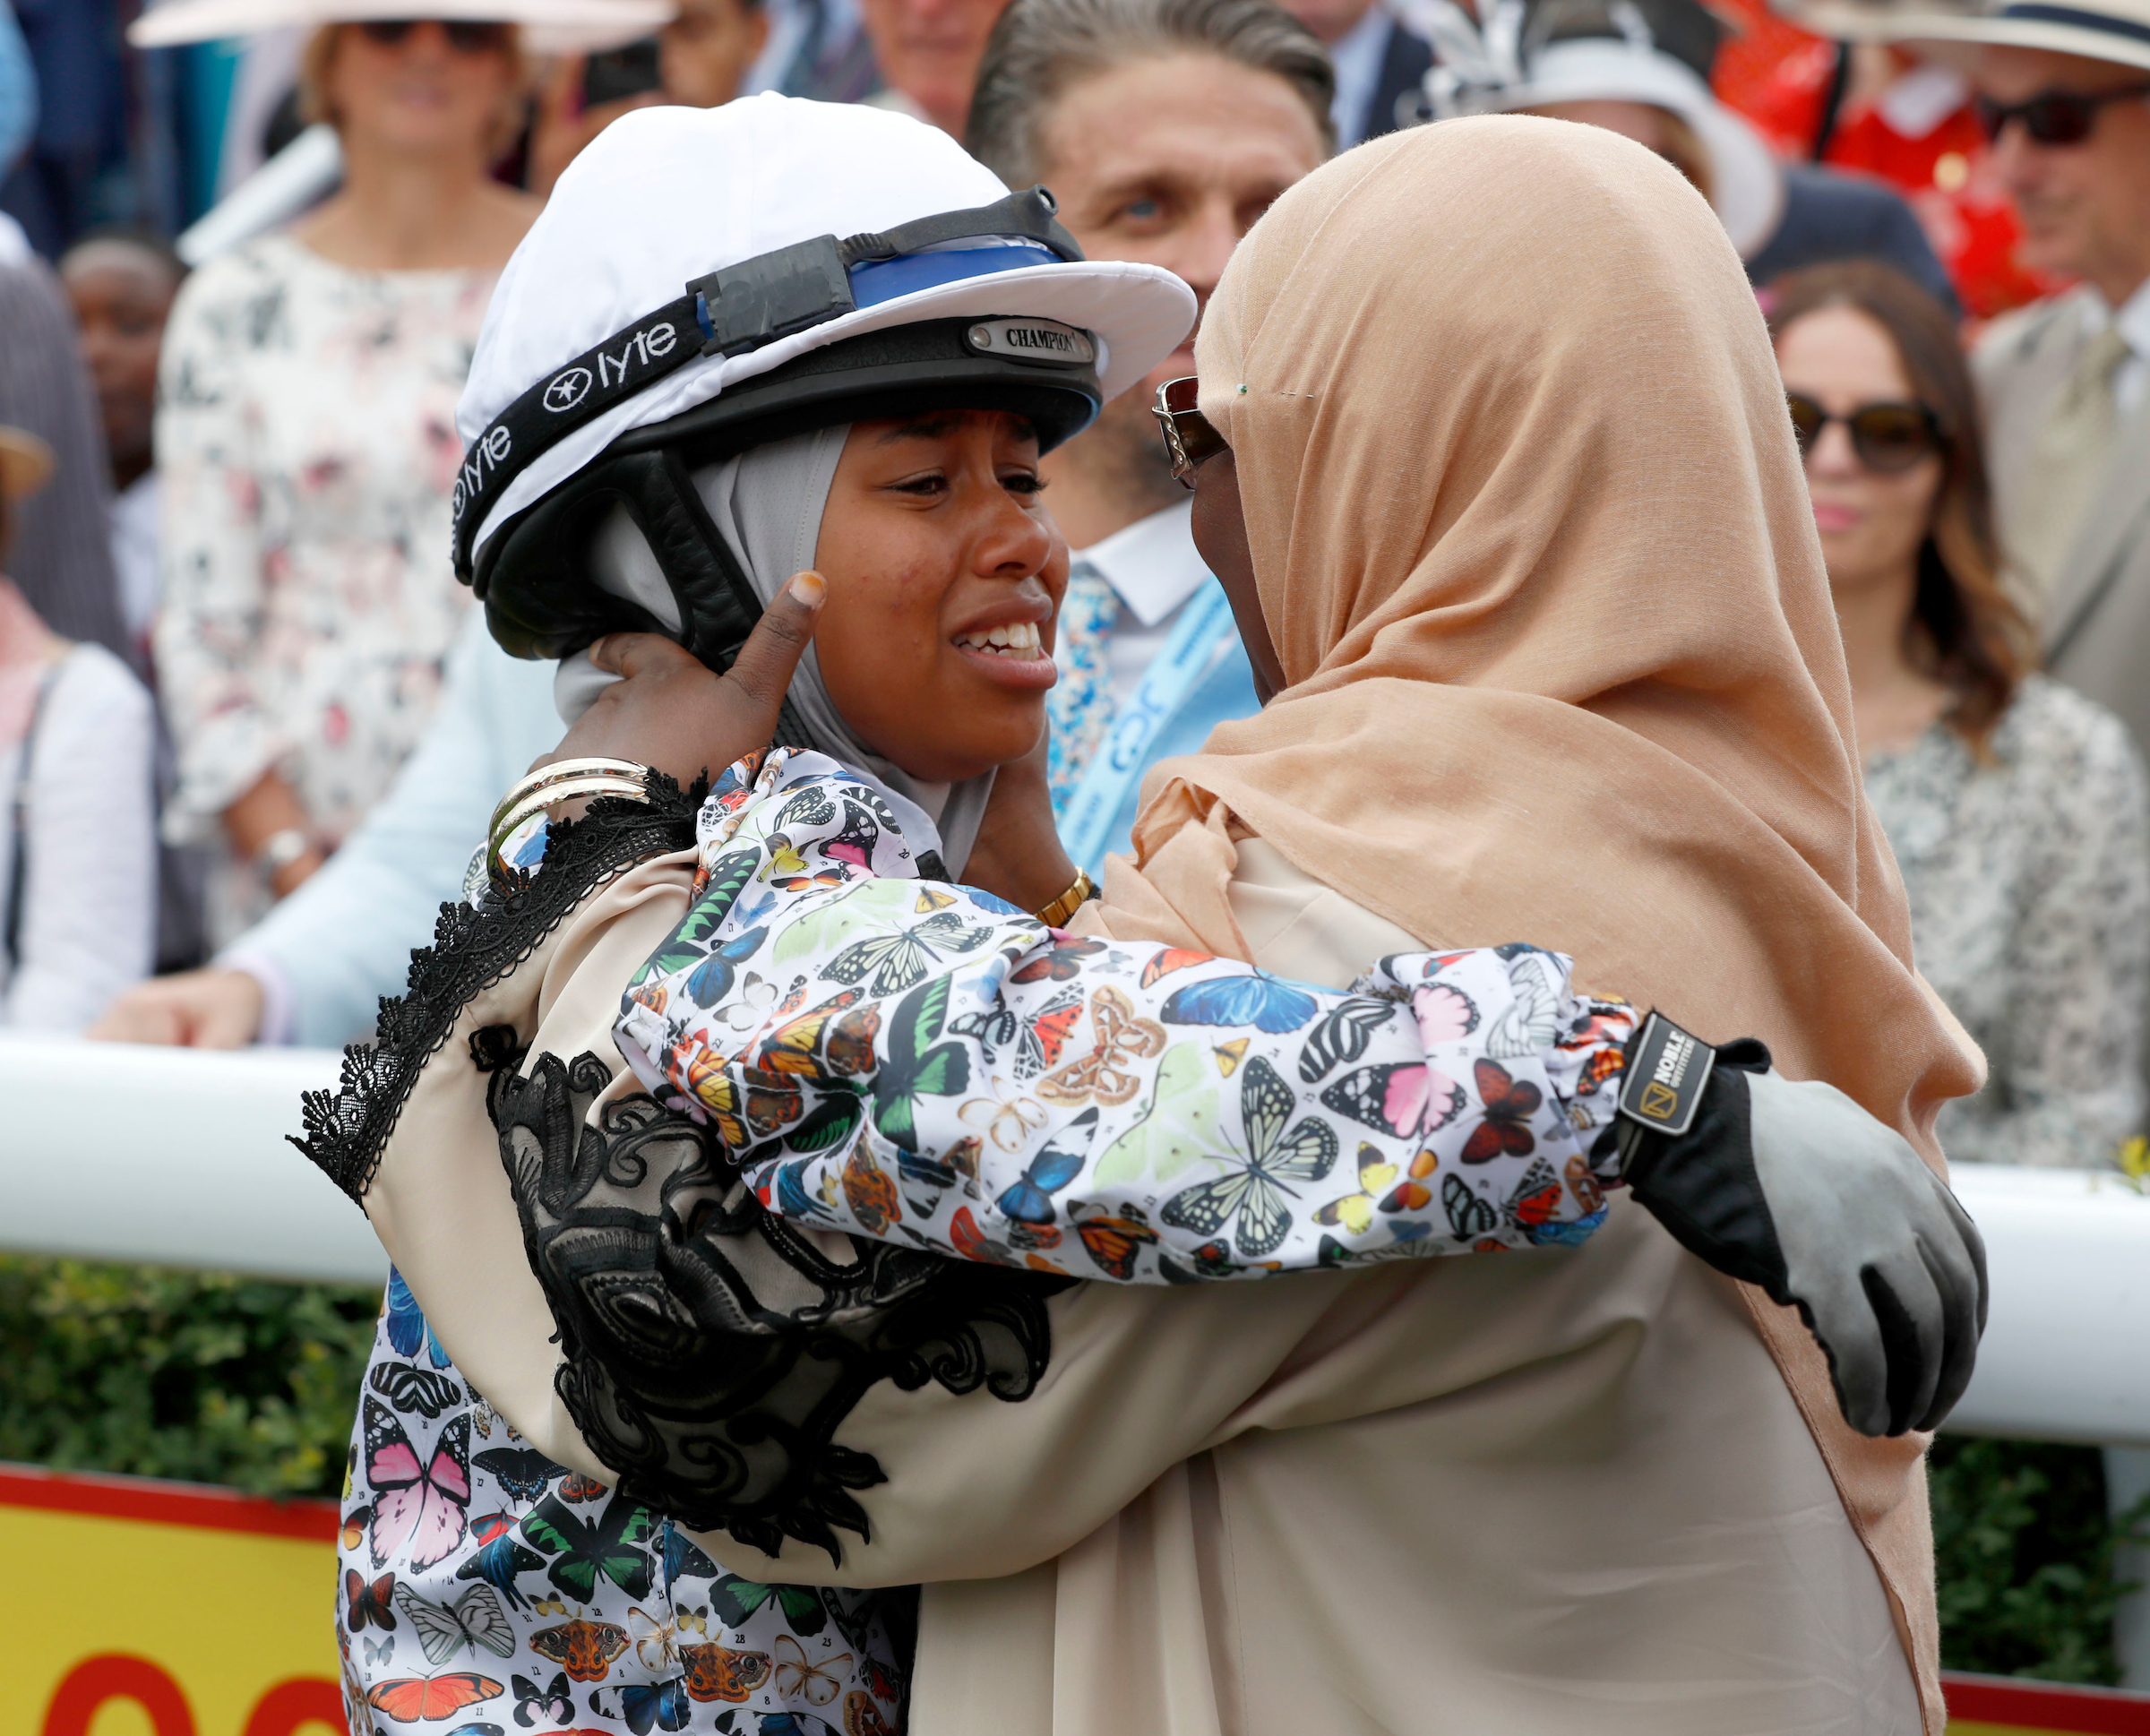 Teenager wins as she becomes first jockey to race in hijab